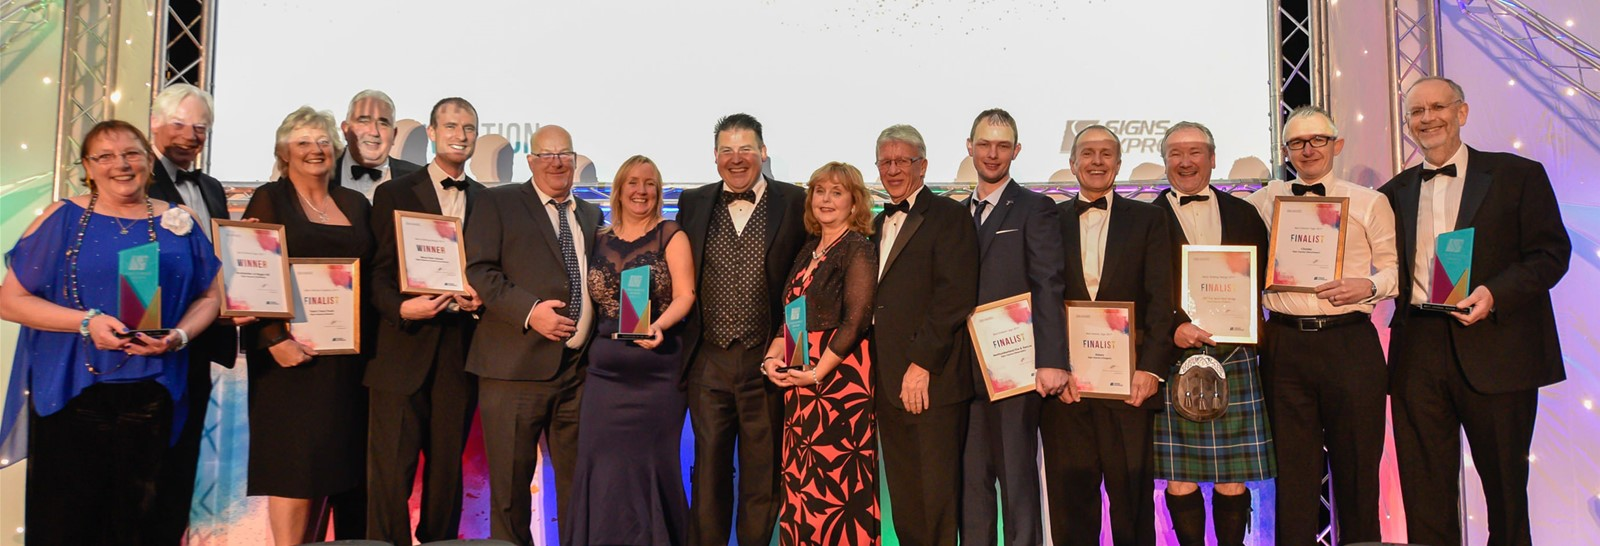 Winners and finalists at the Signs Express Sign Awards 2018